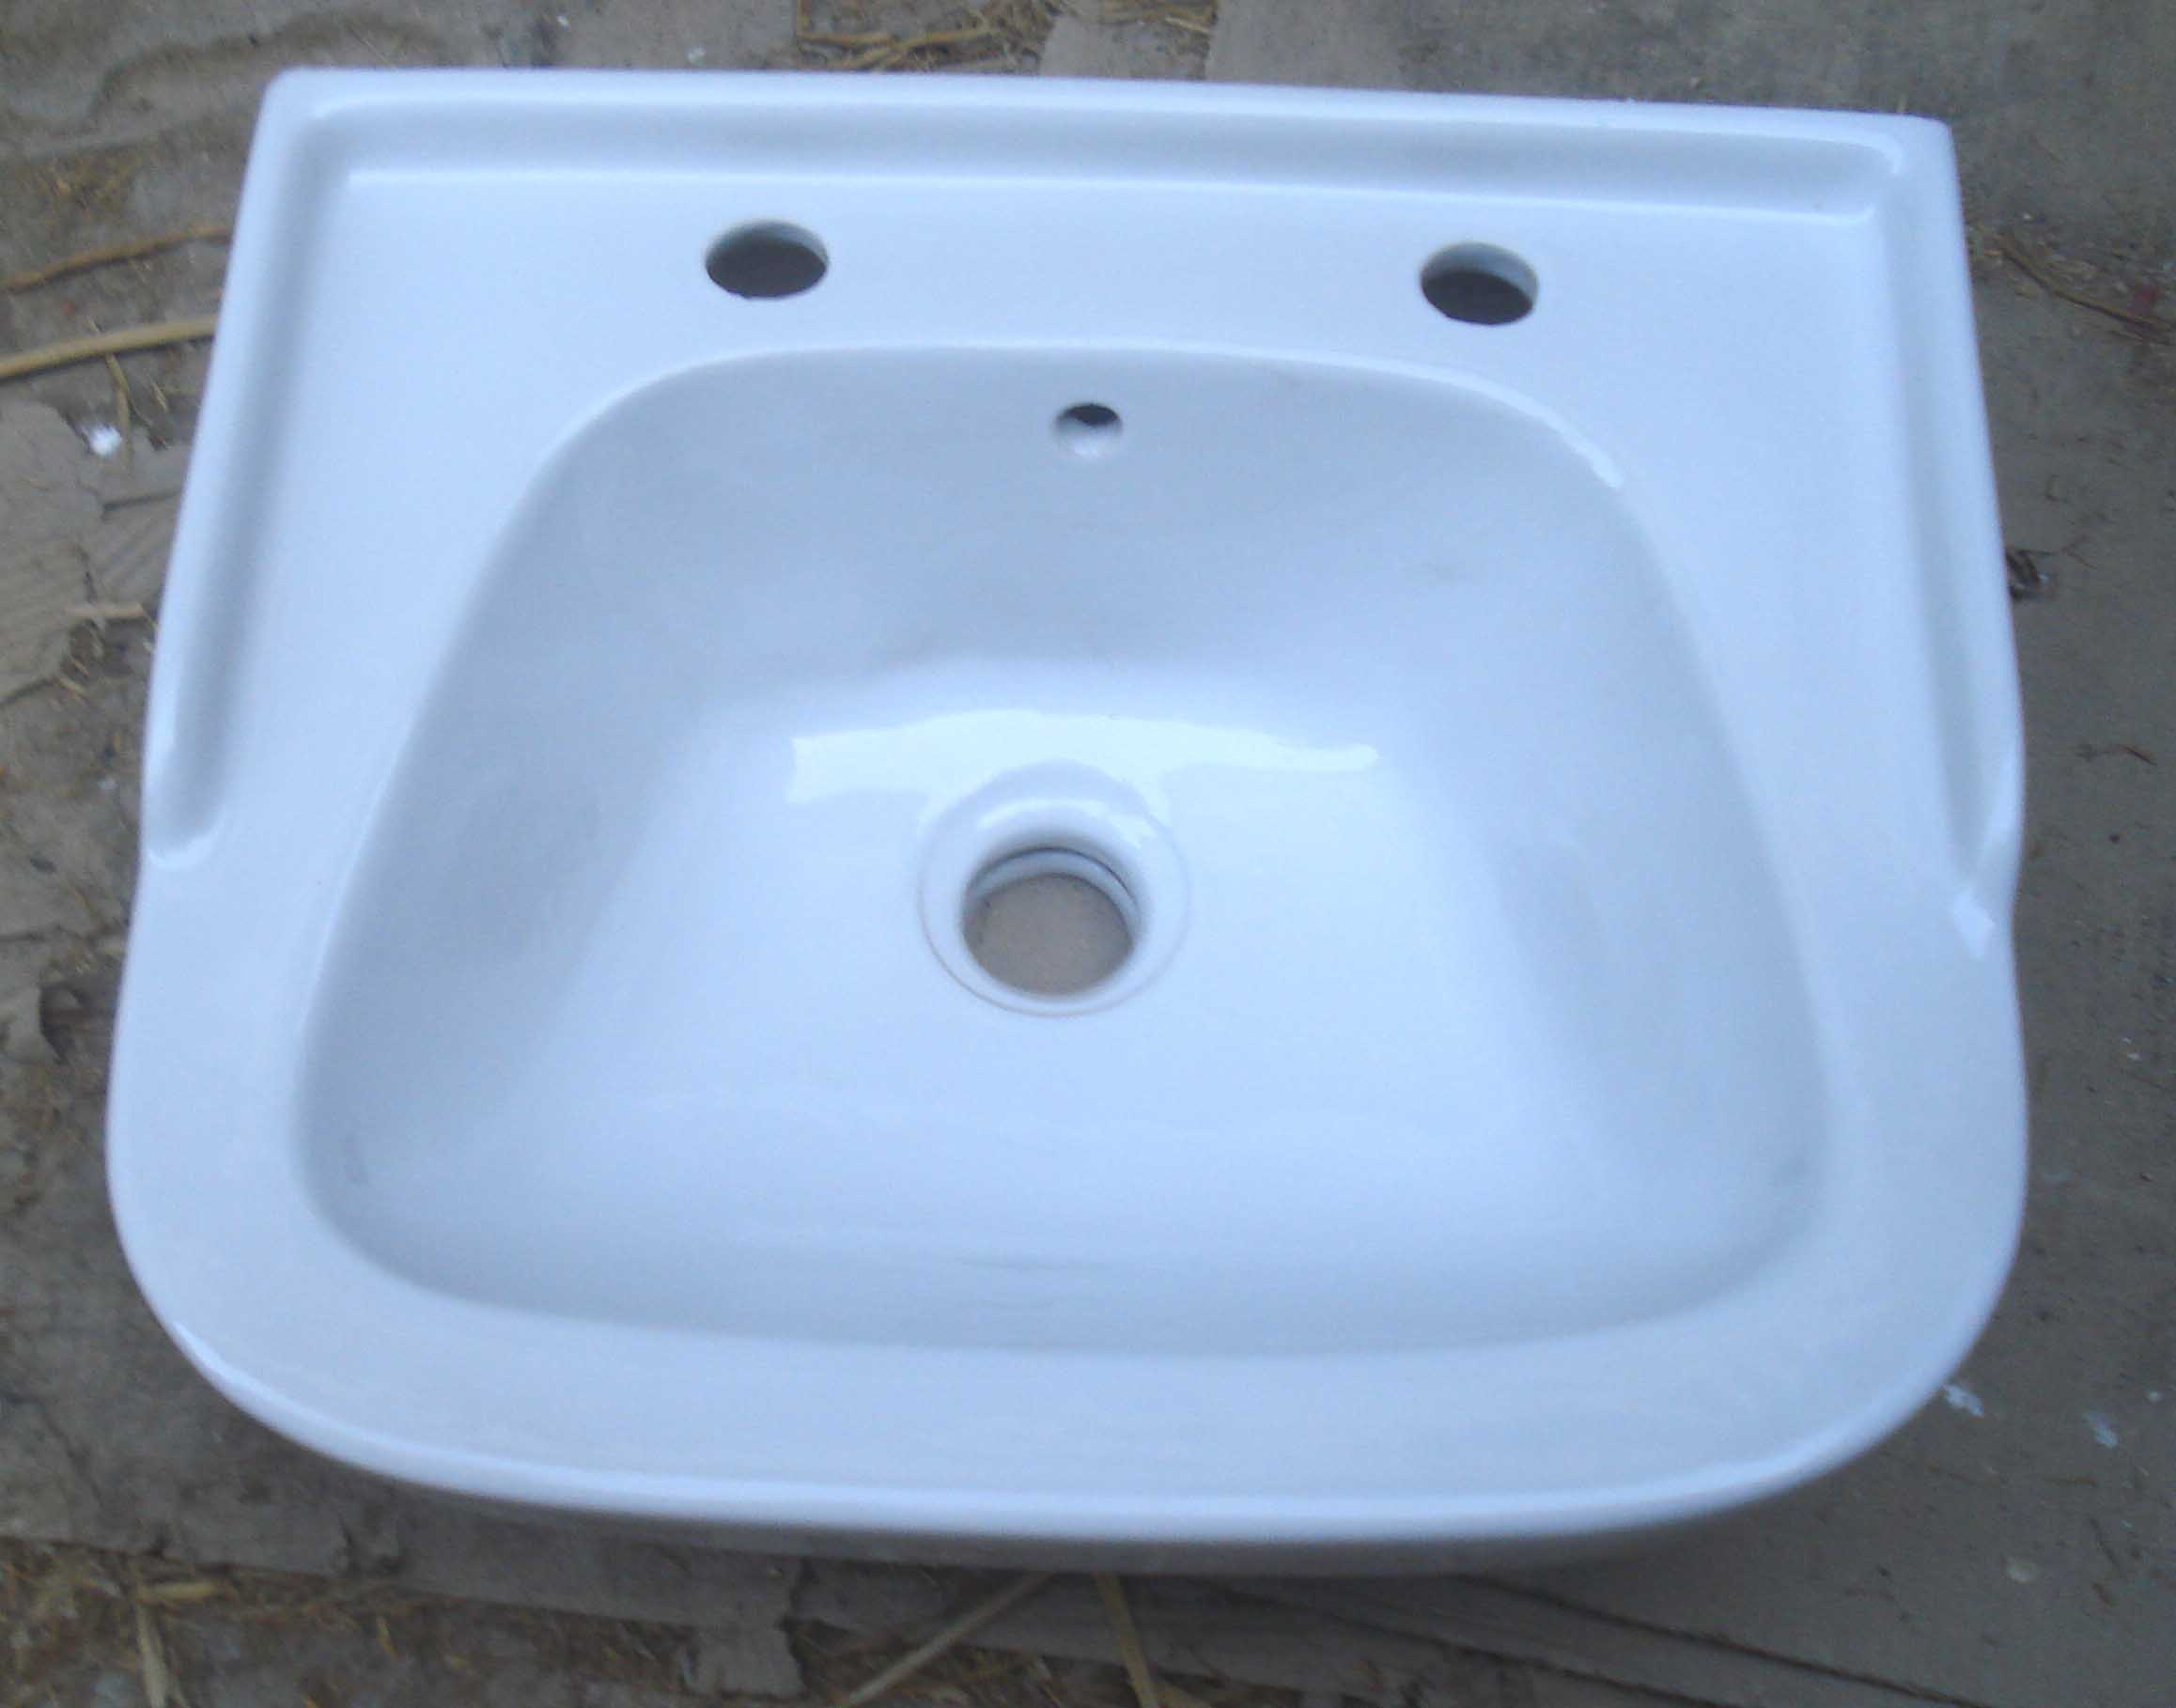 bathroom fittings why are they important. The Demand Of Ceramic Sanitary Bathroom Fittings Why Are They Important